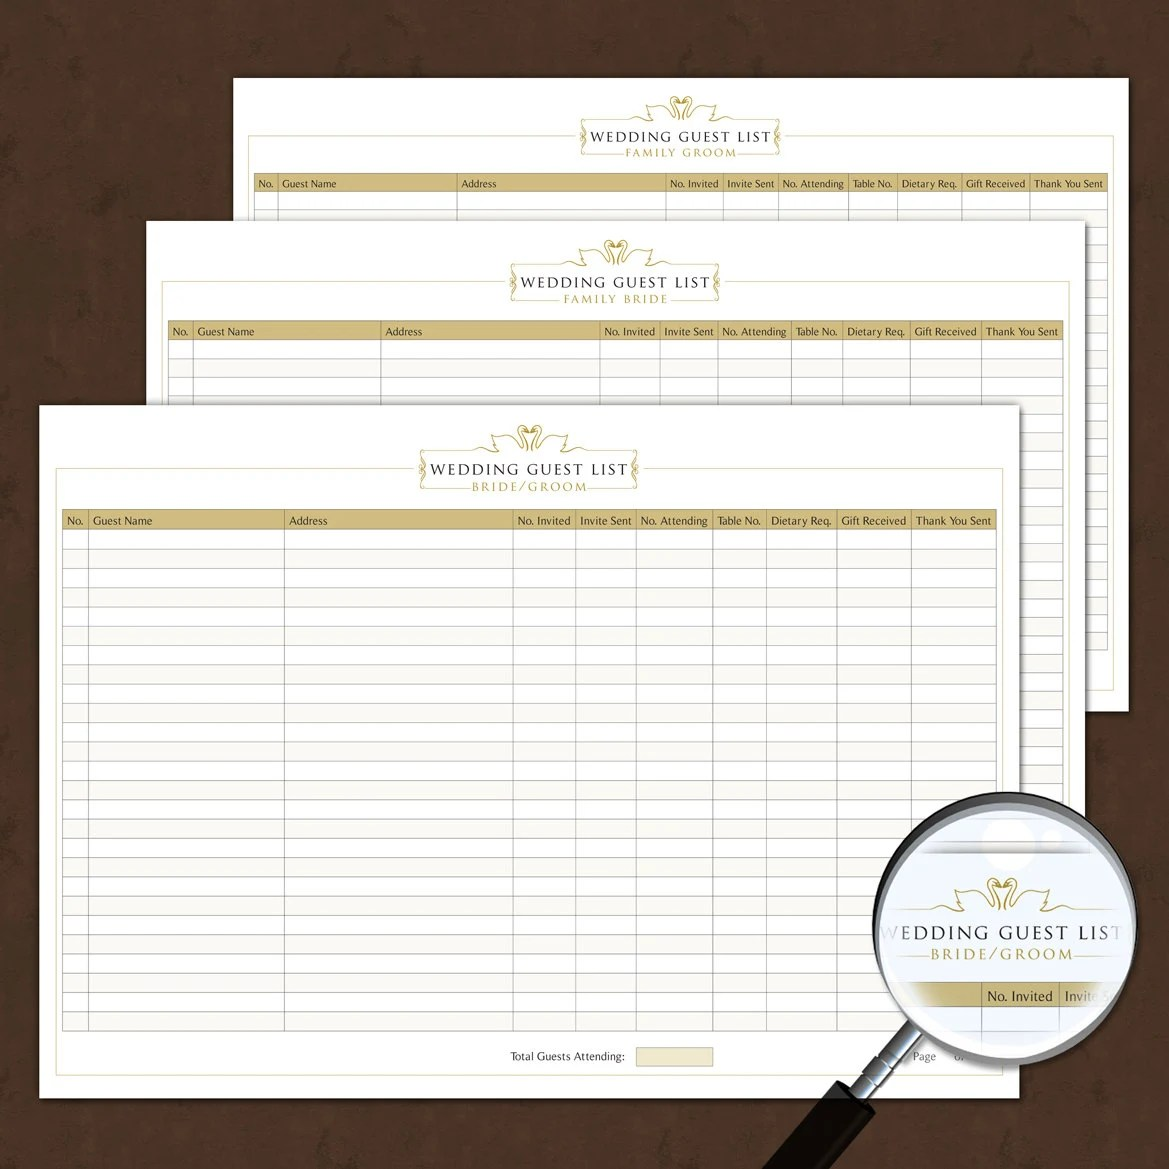 Wedding Guest List Template Interactive Printable Amp Fillable